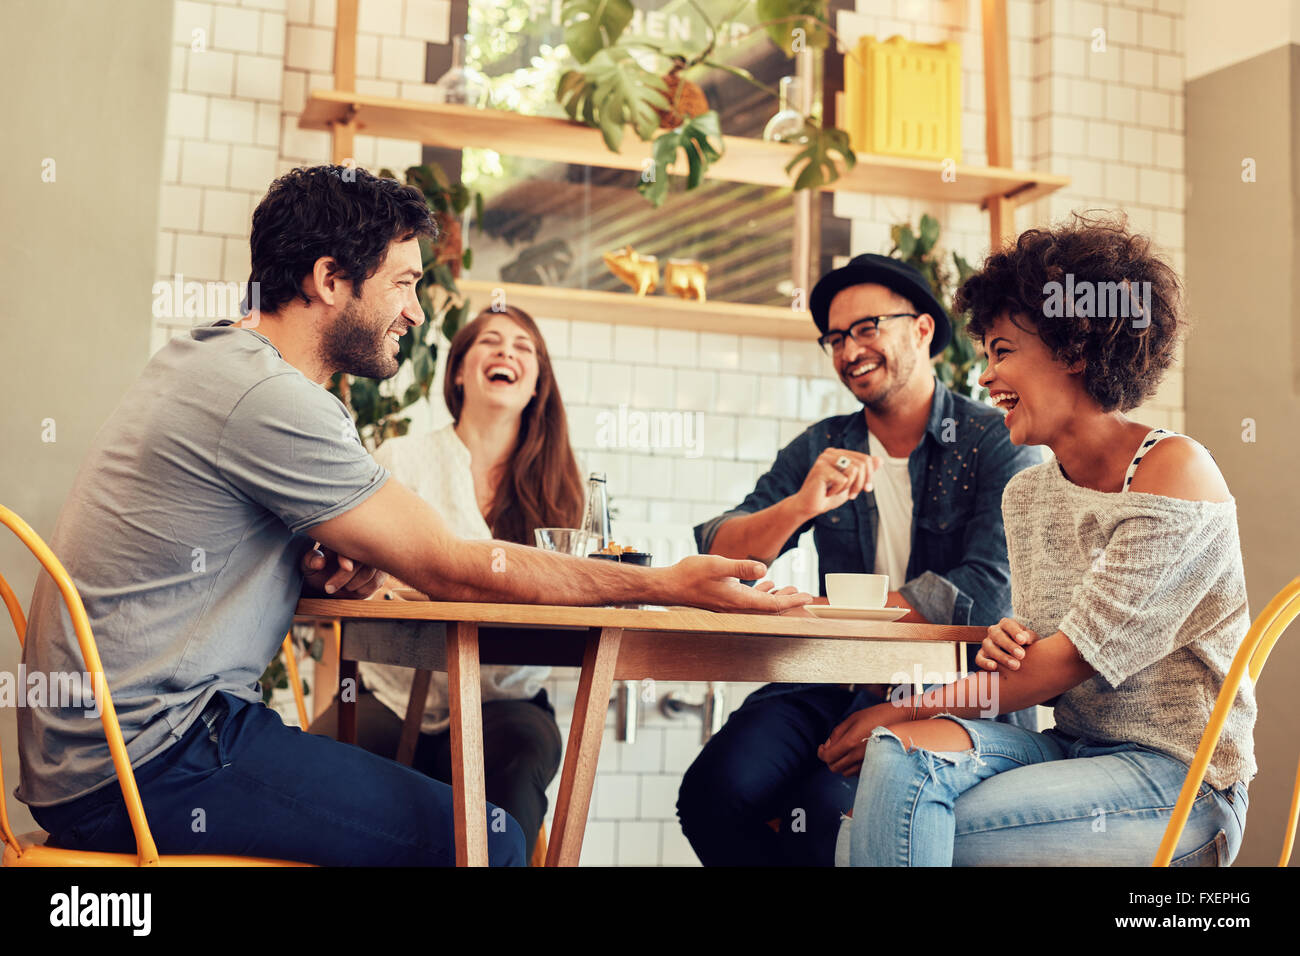 Young friends having a great time in restaurant. Group of young people sitting in a coffee shop and smiling. - Stock Image